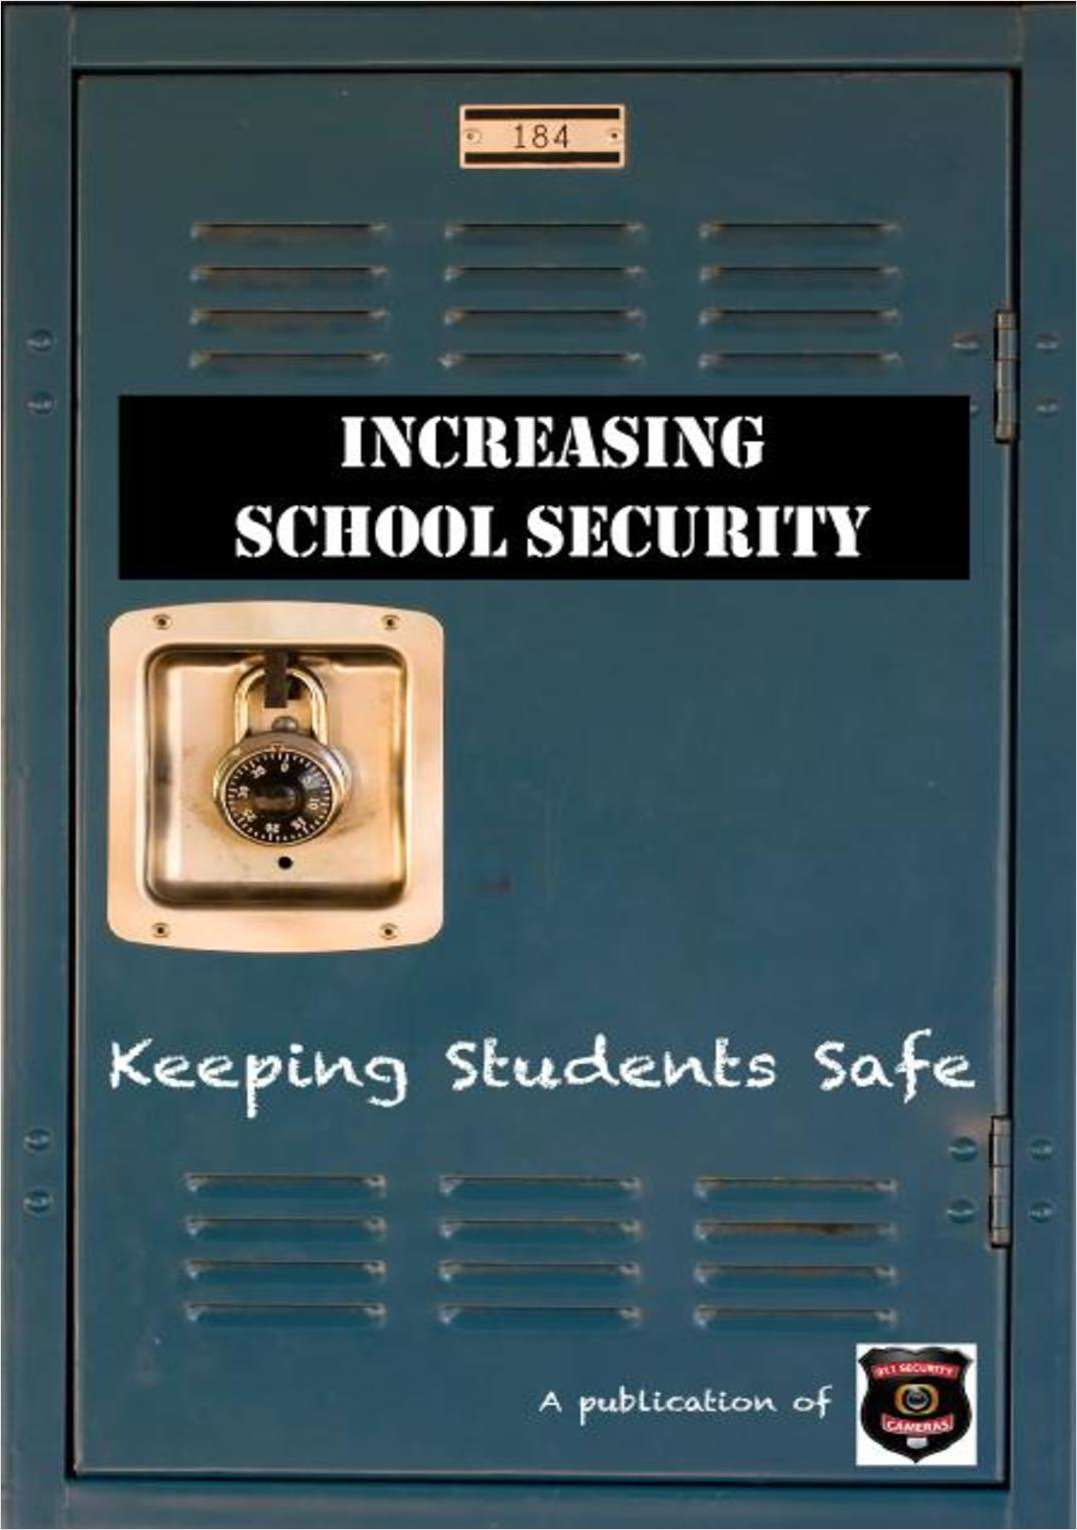 Increasing School Security with Access Control